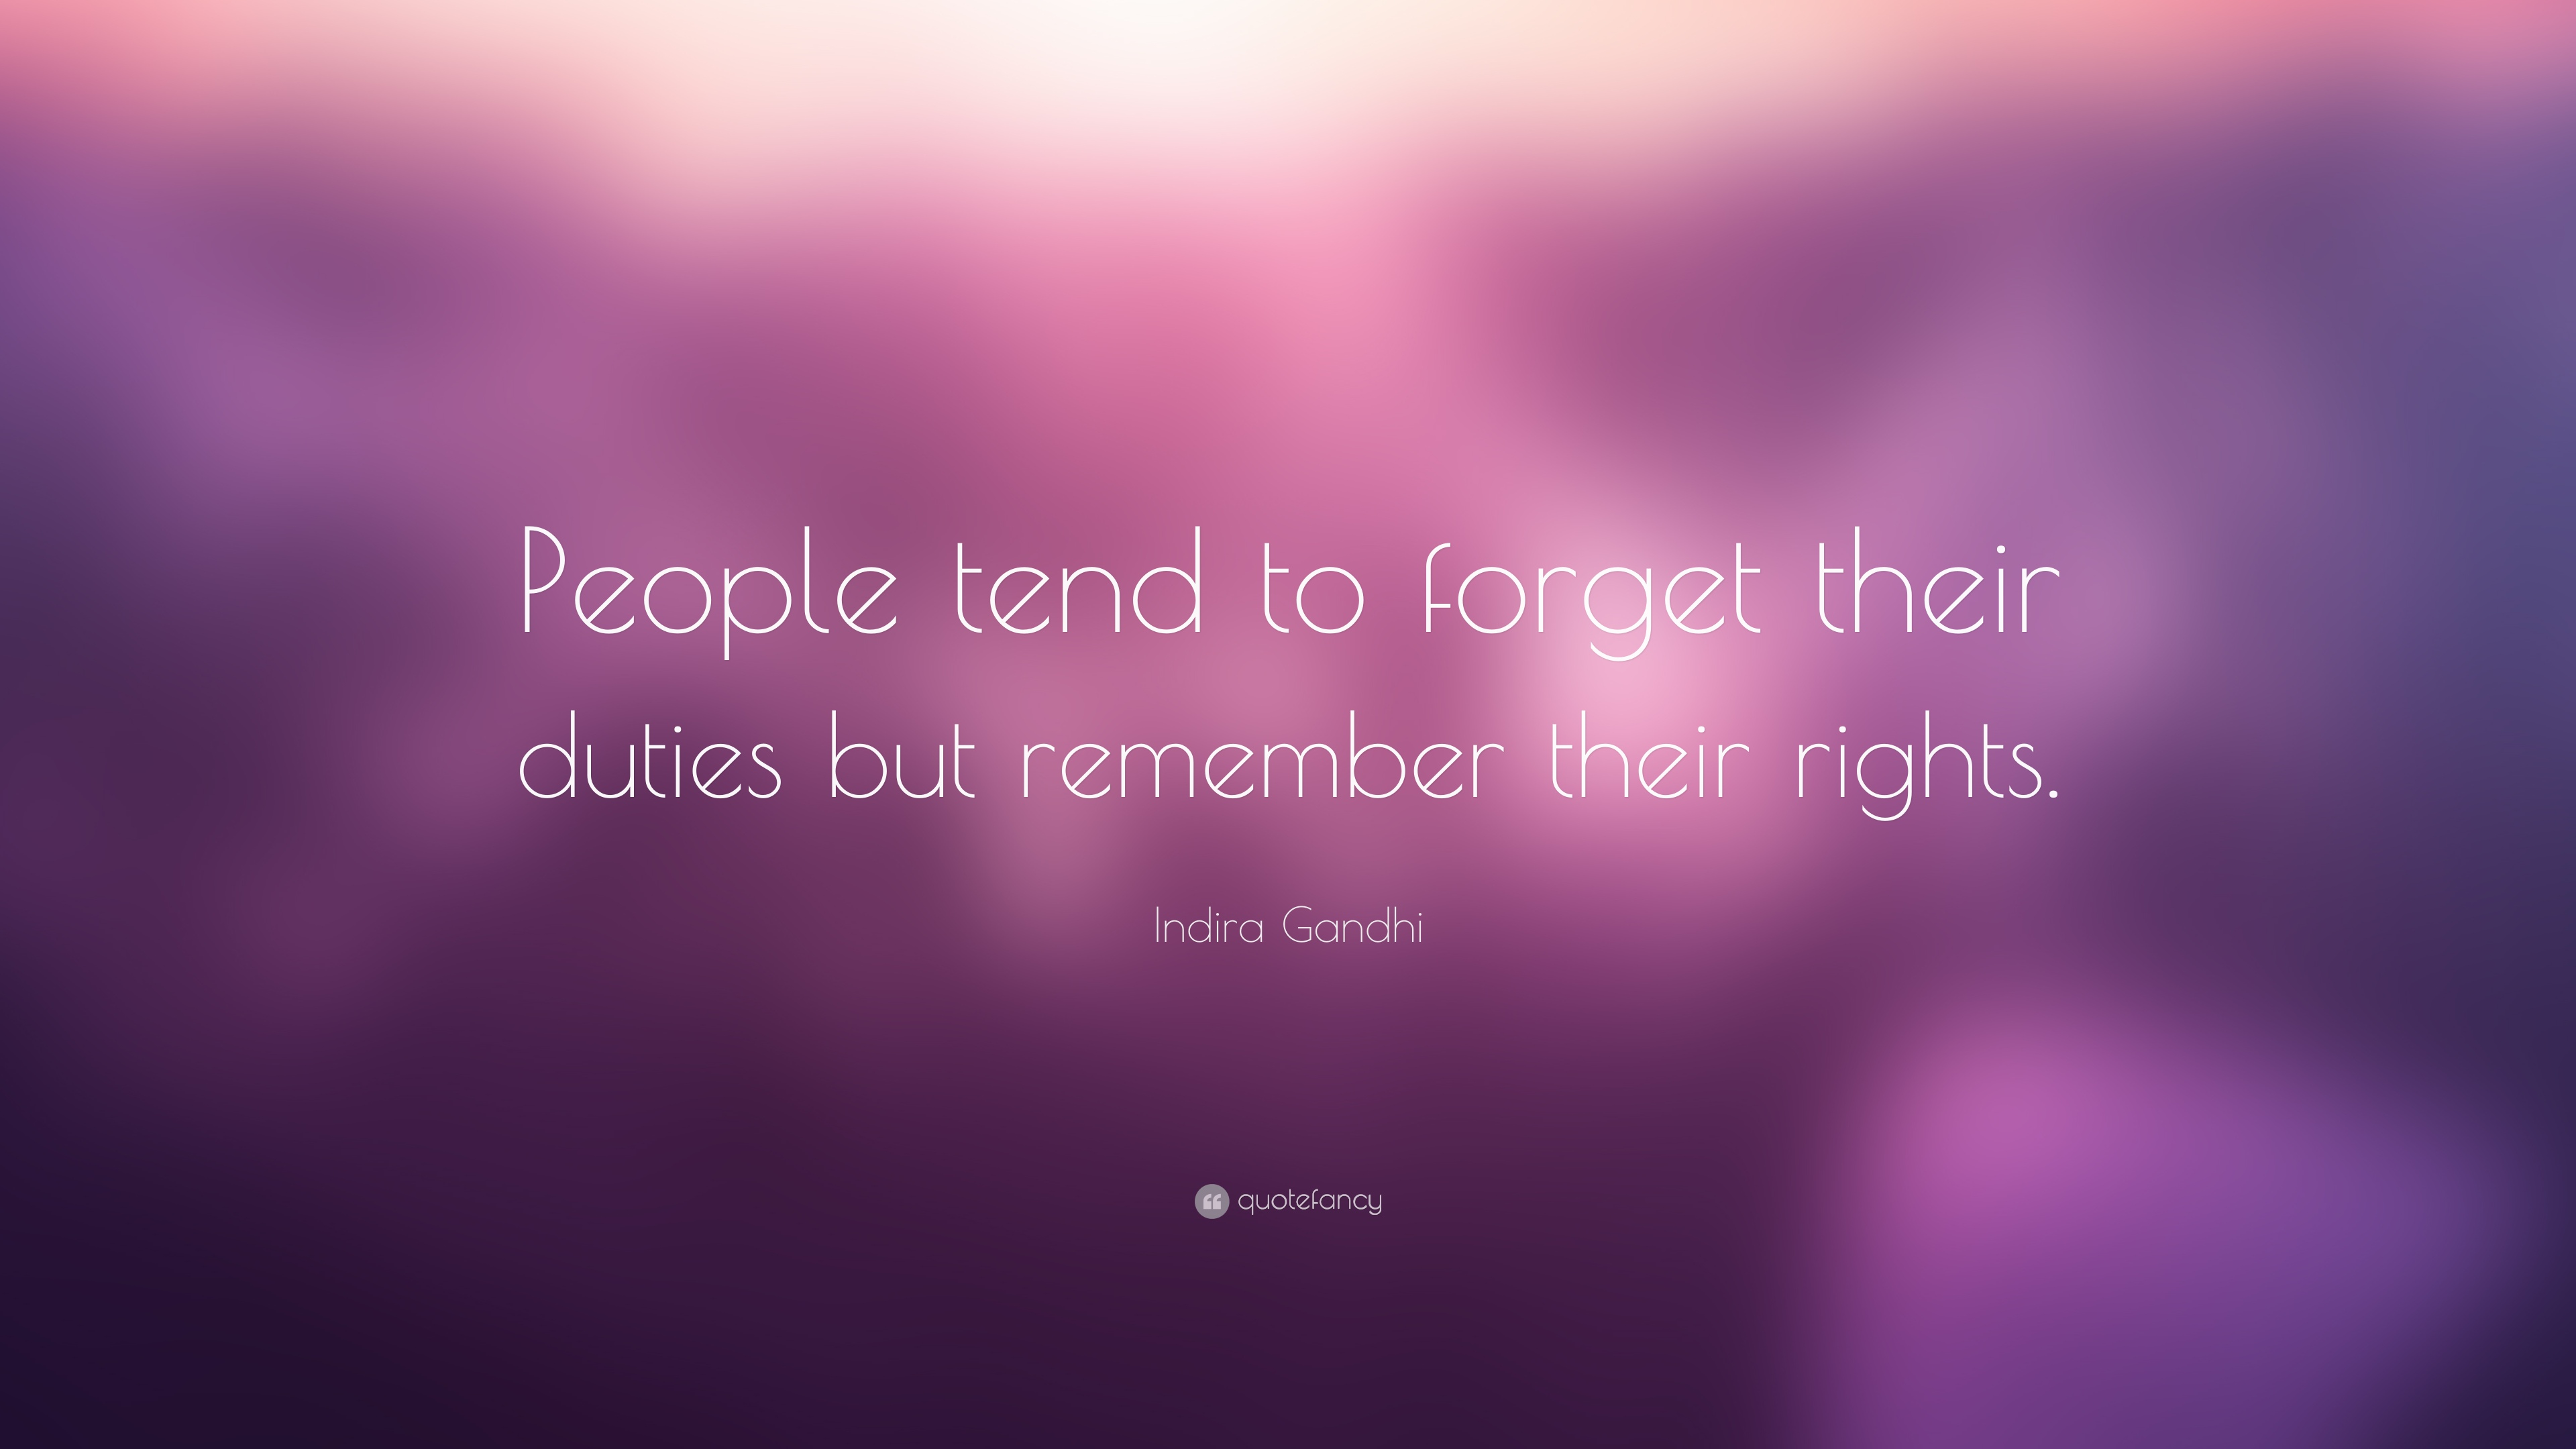 Indira gandhi quote people tend to forget their duties but indira gandhi quote people tend to forget their duties but remember their rights altavistaventures Gallery